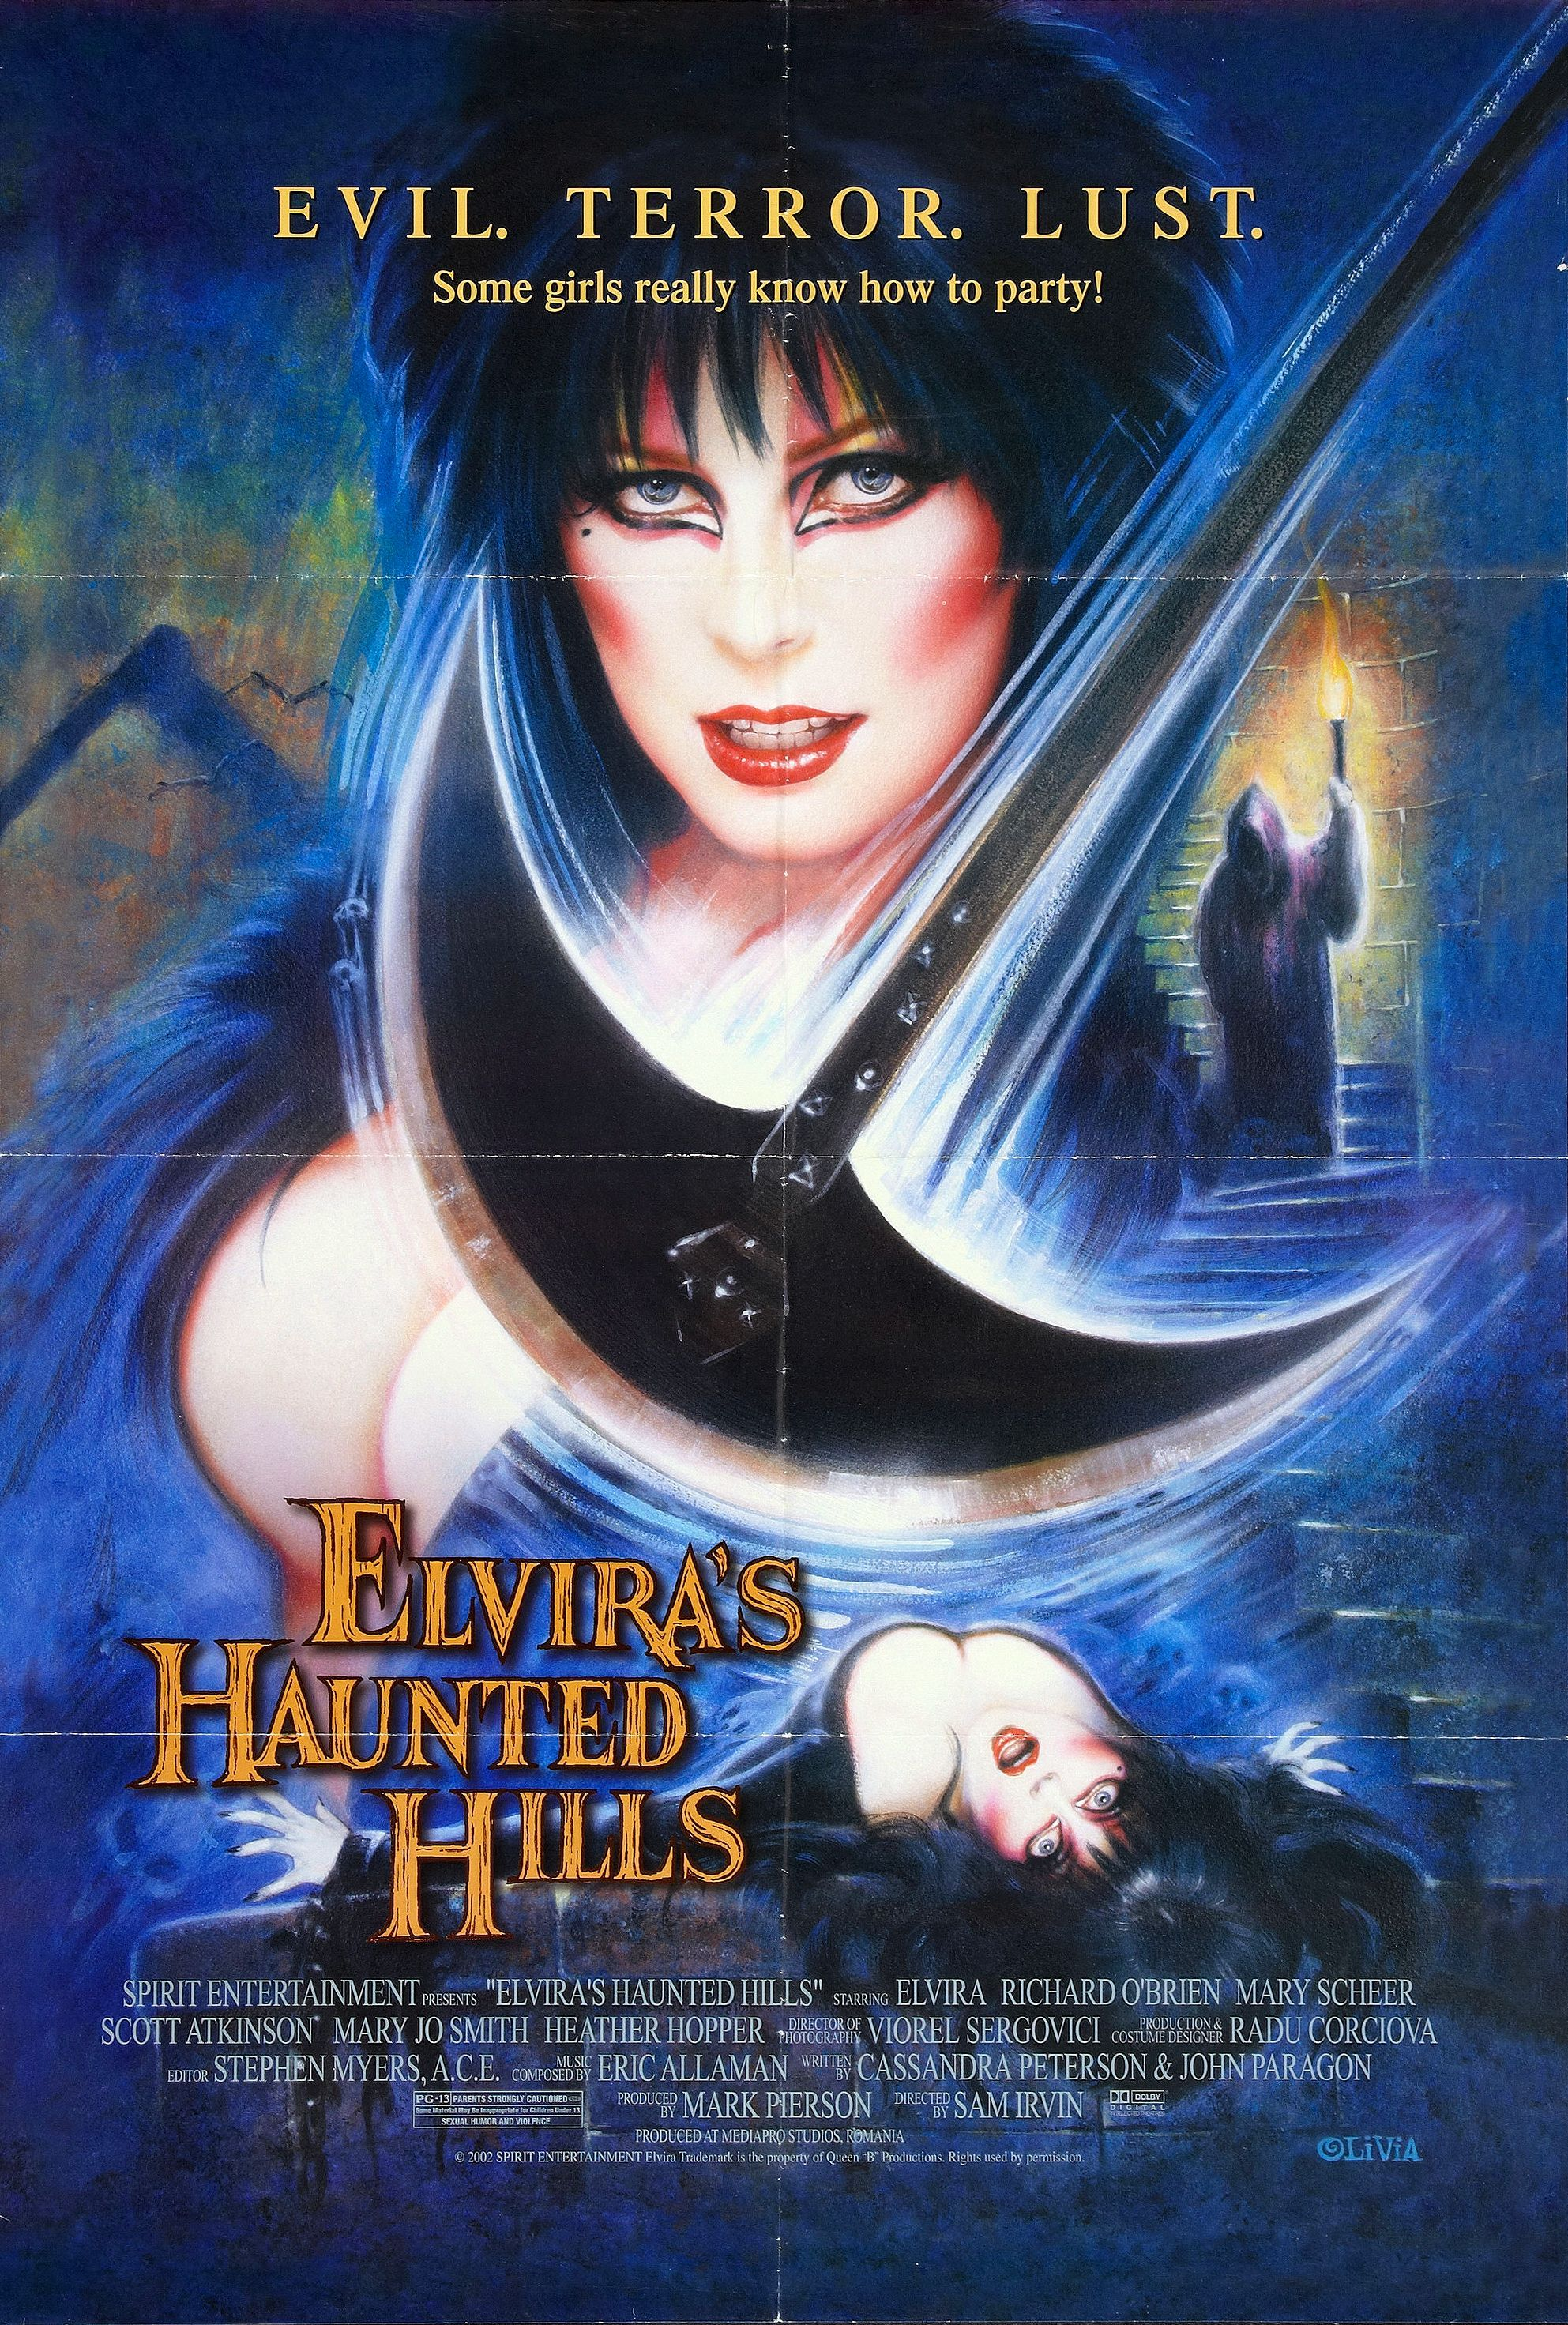 Elvira S Haunted Hills 2001 Cassandra Peterson Movie Posters